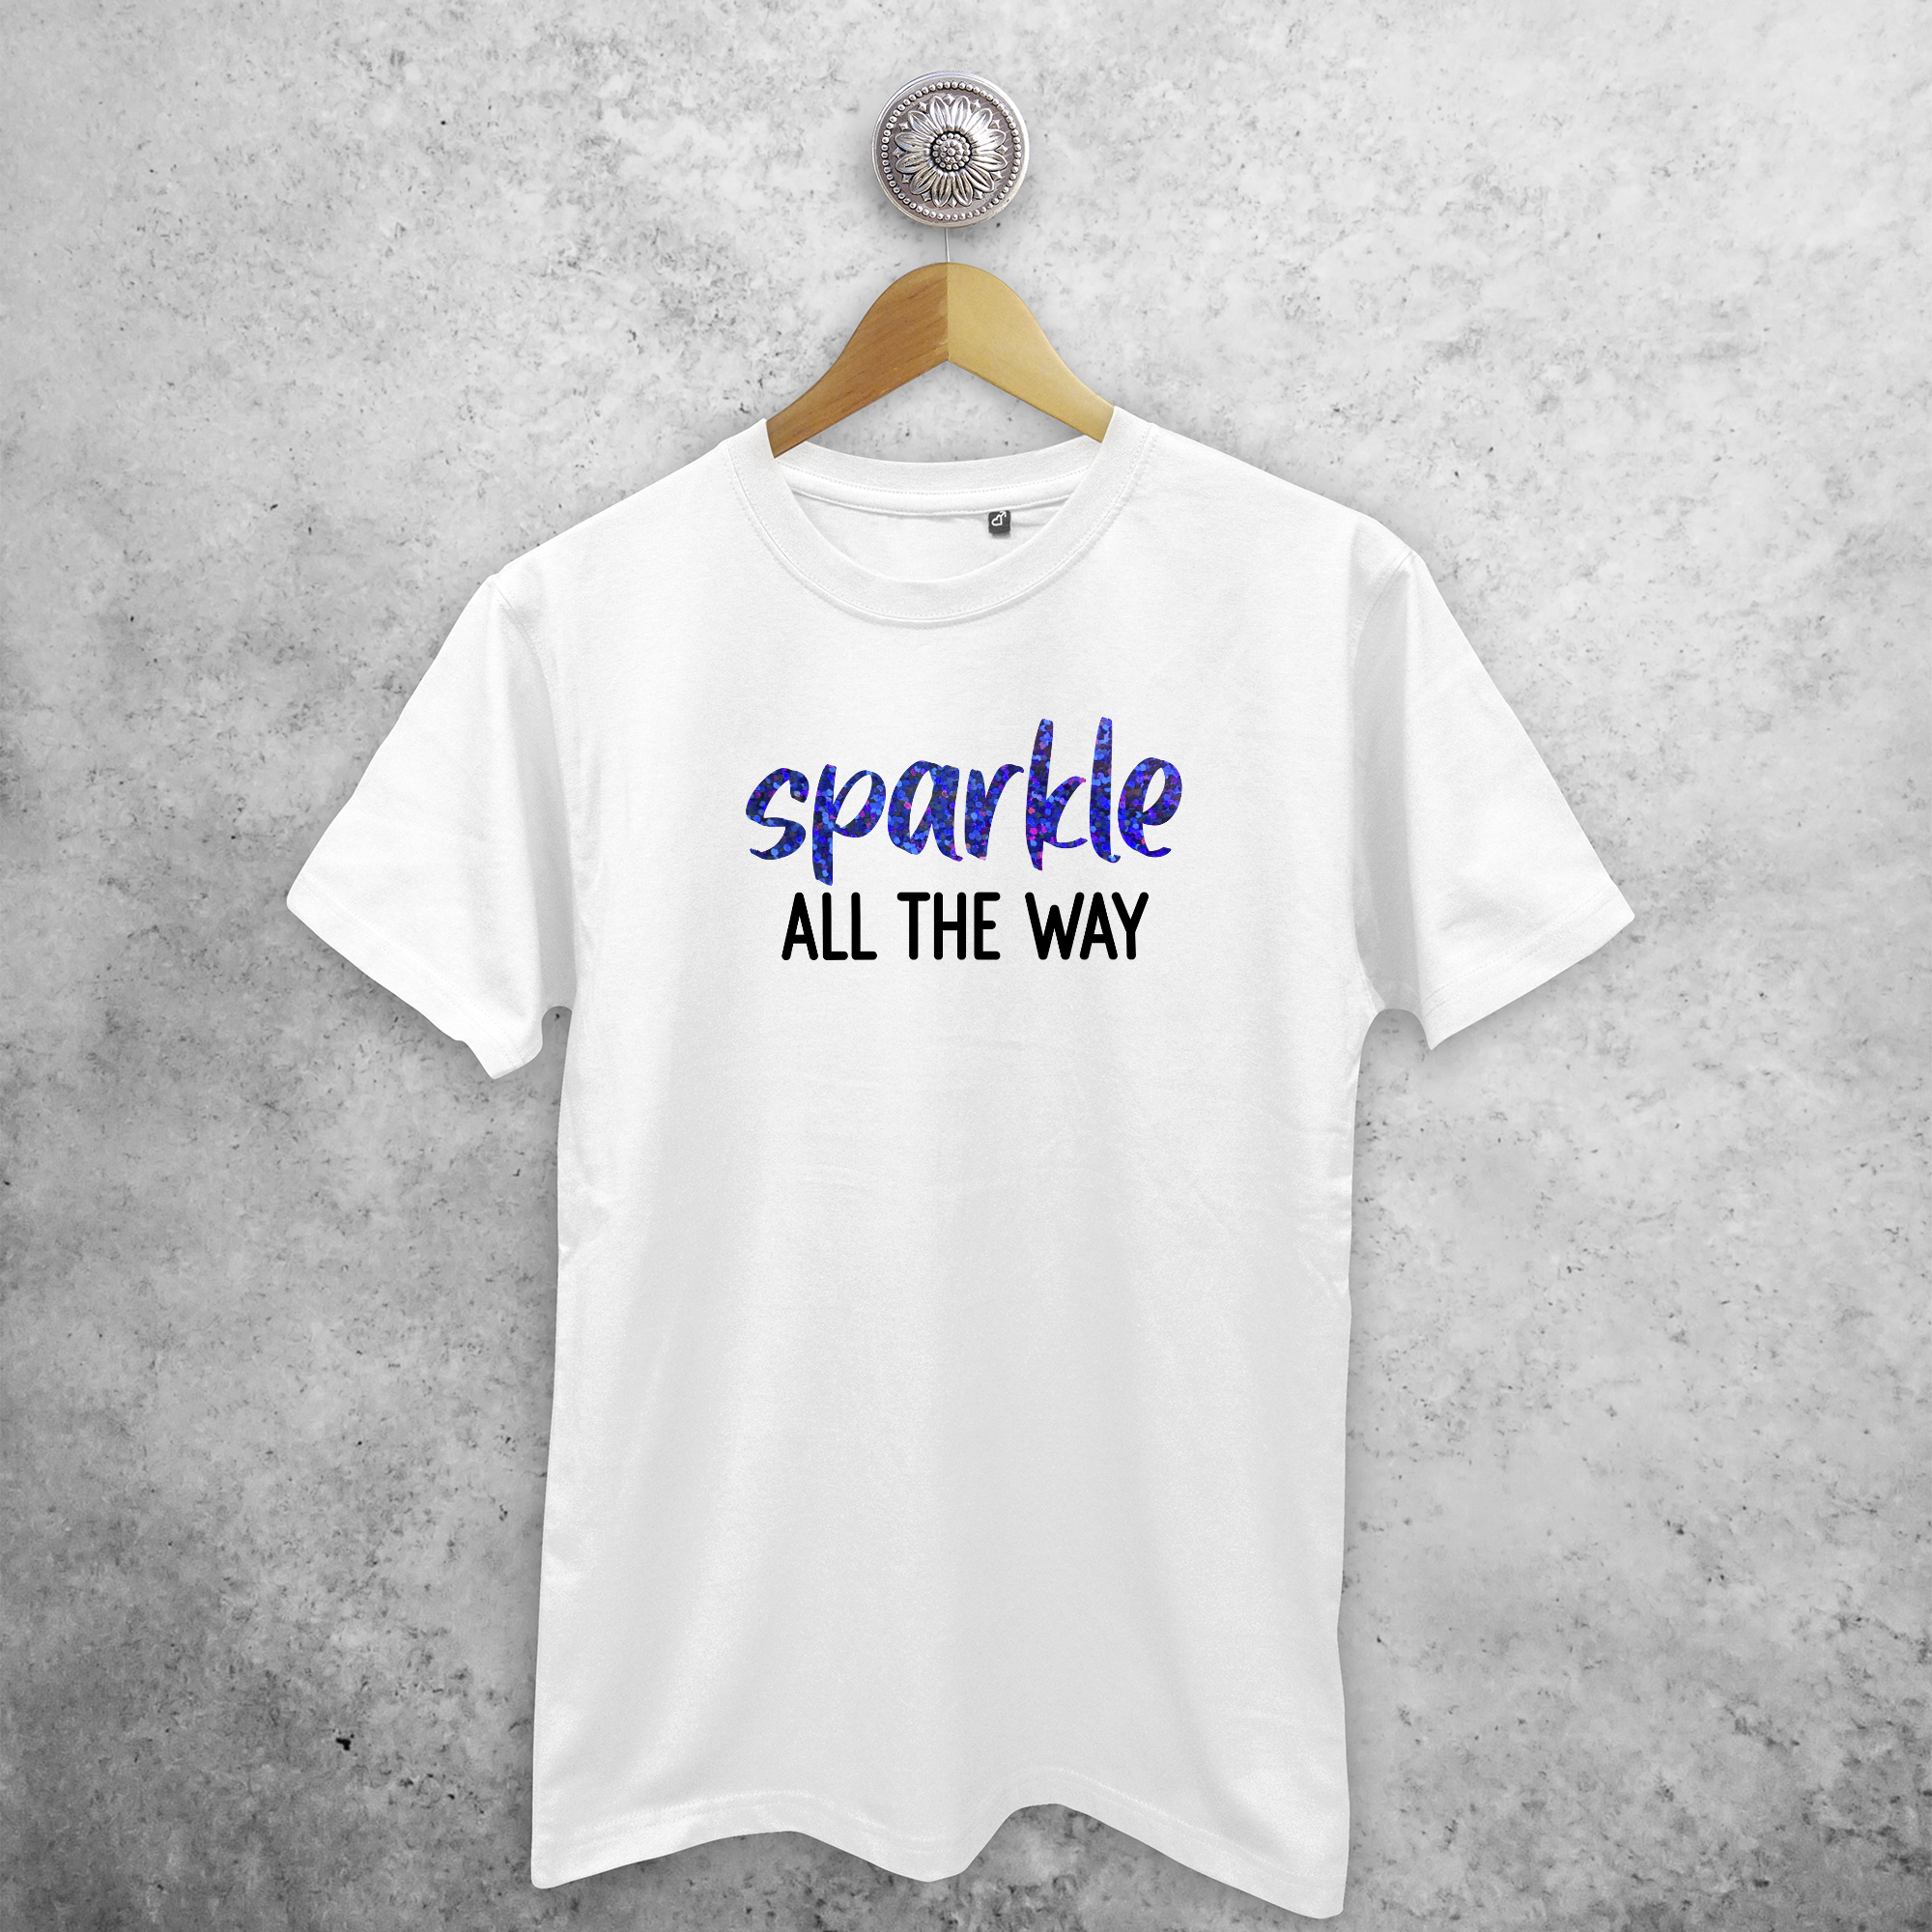 'Sparkle all the way' adult shirt